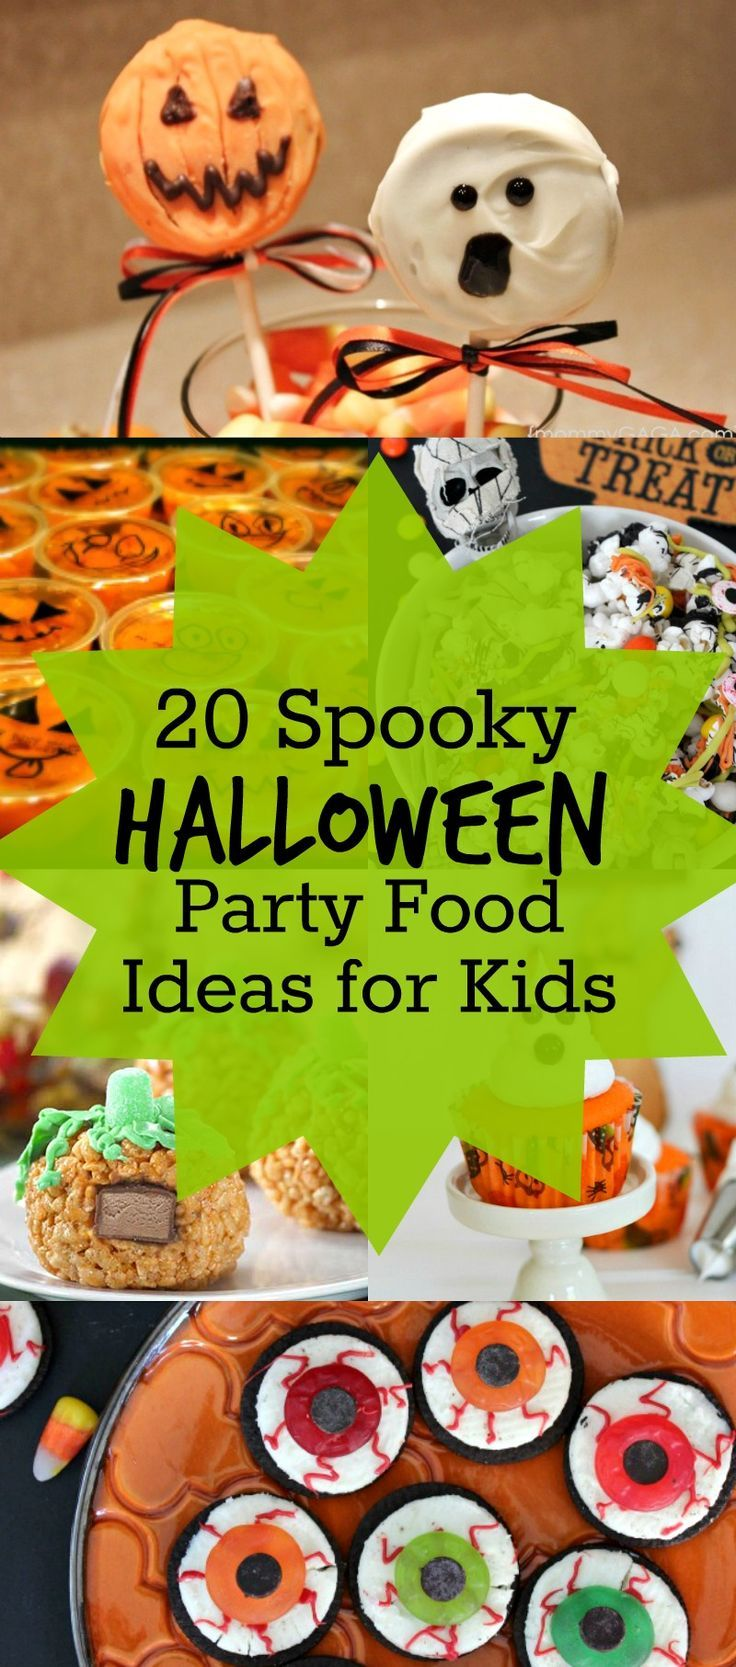 526 best halloween images on pinterest halloween recipe for Halloween party food ideas for kids